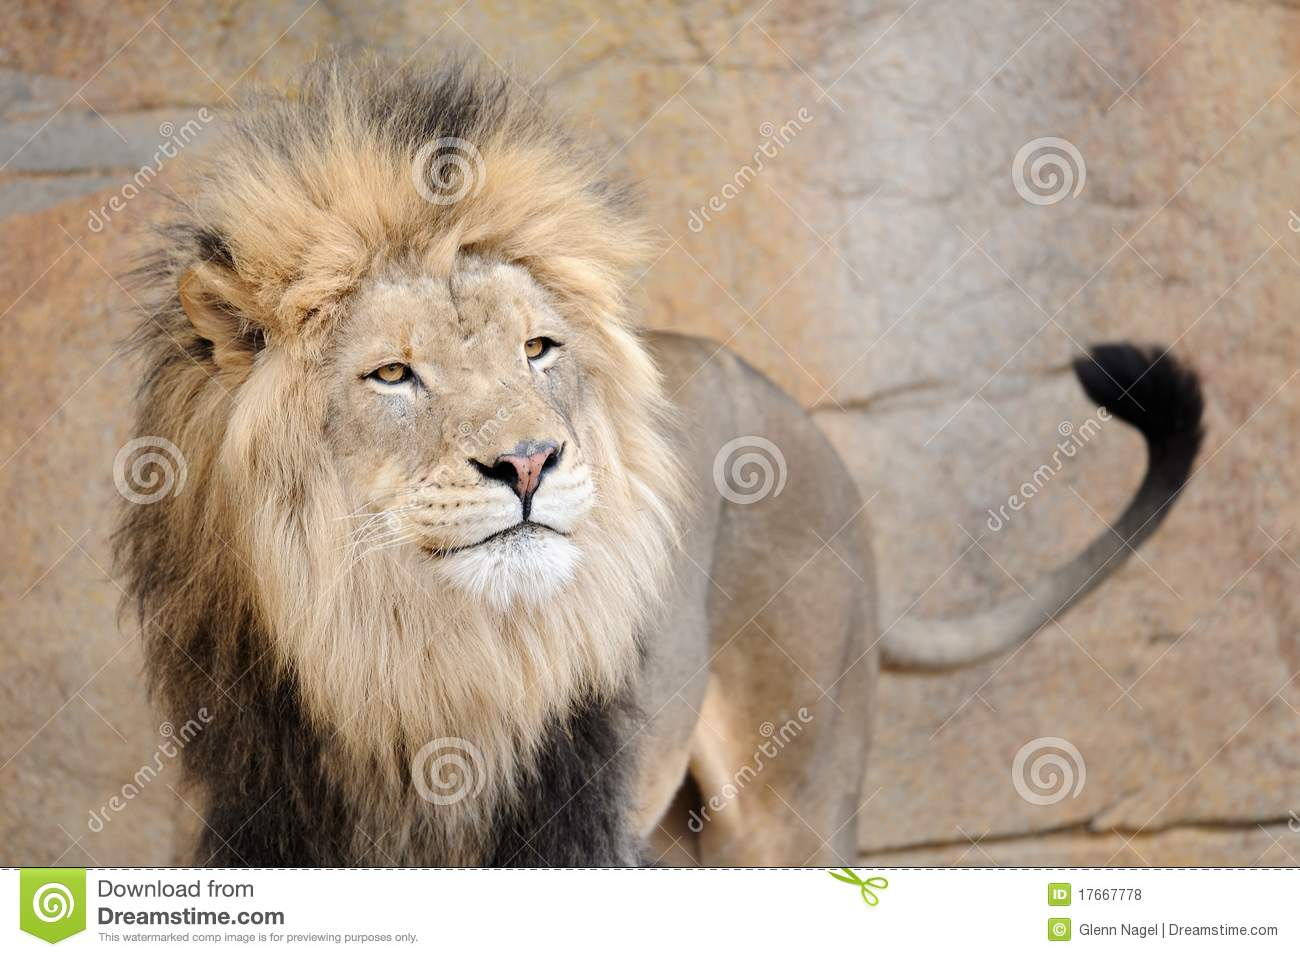 African Lion Wagging Tail Royalty Free Stock Photos - Image: 17667778